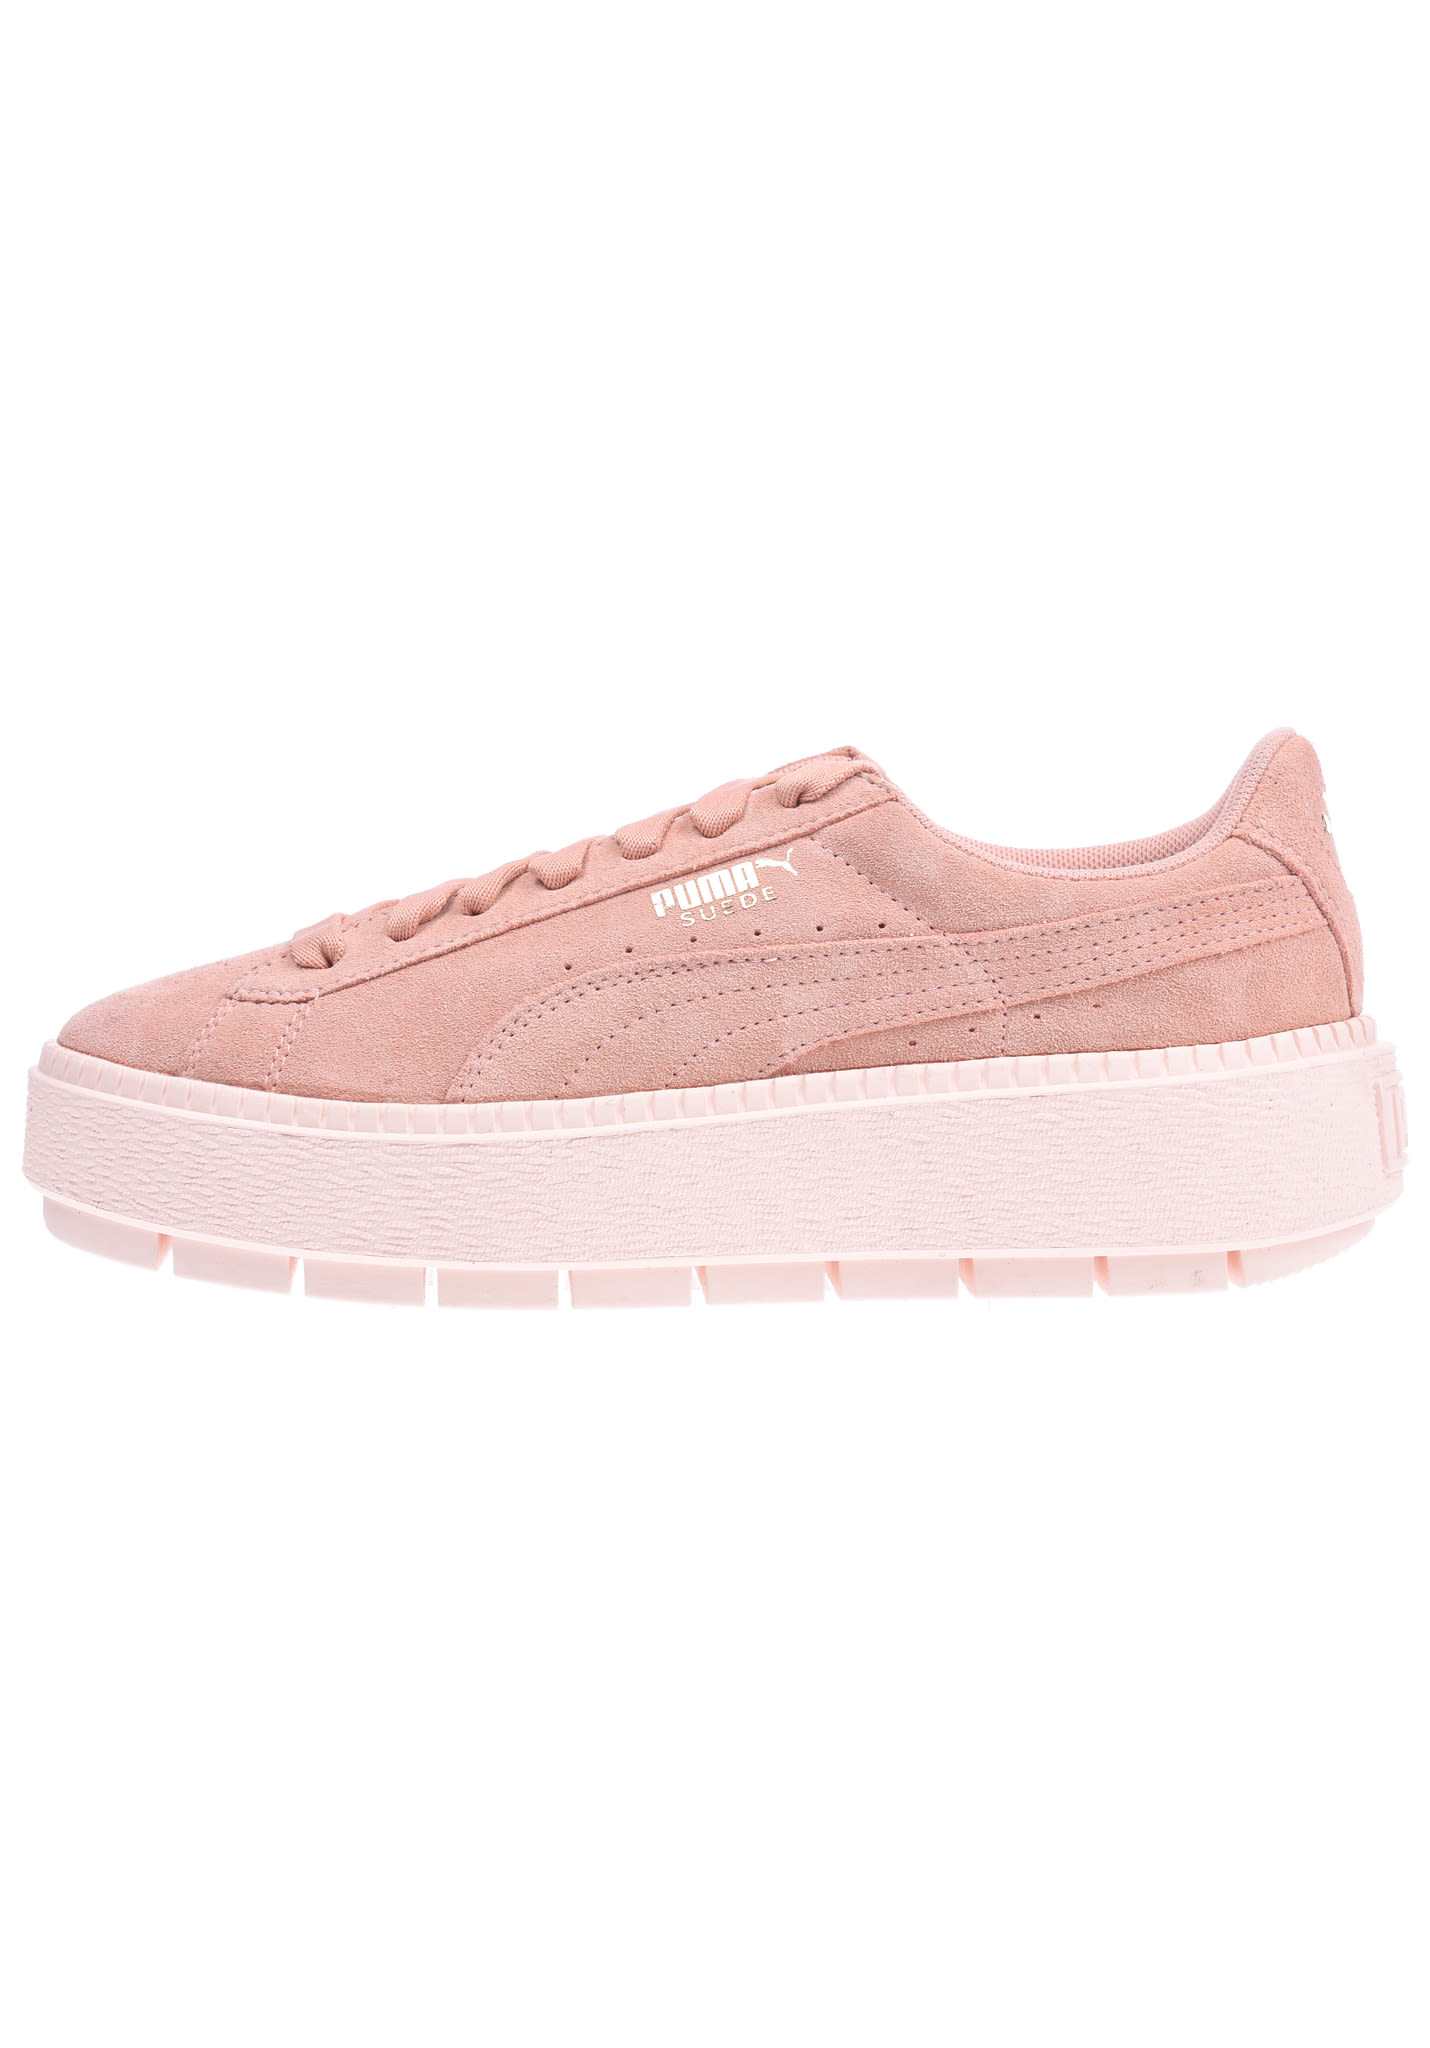 big sale 443e7 68d3c Puma Platform Trace - Sneakers for Women - Pink